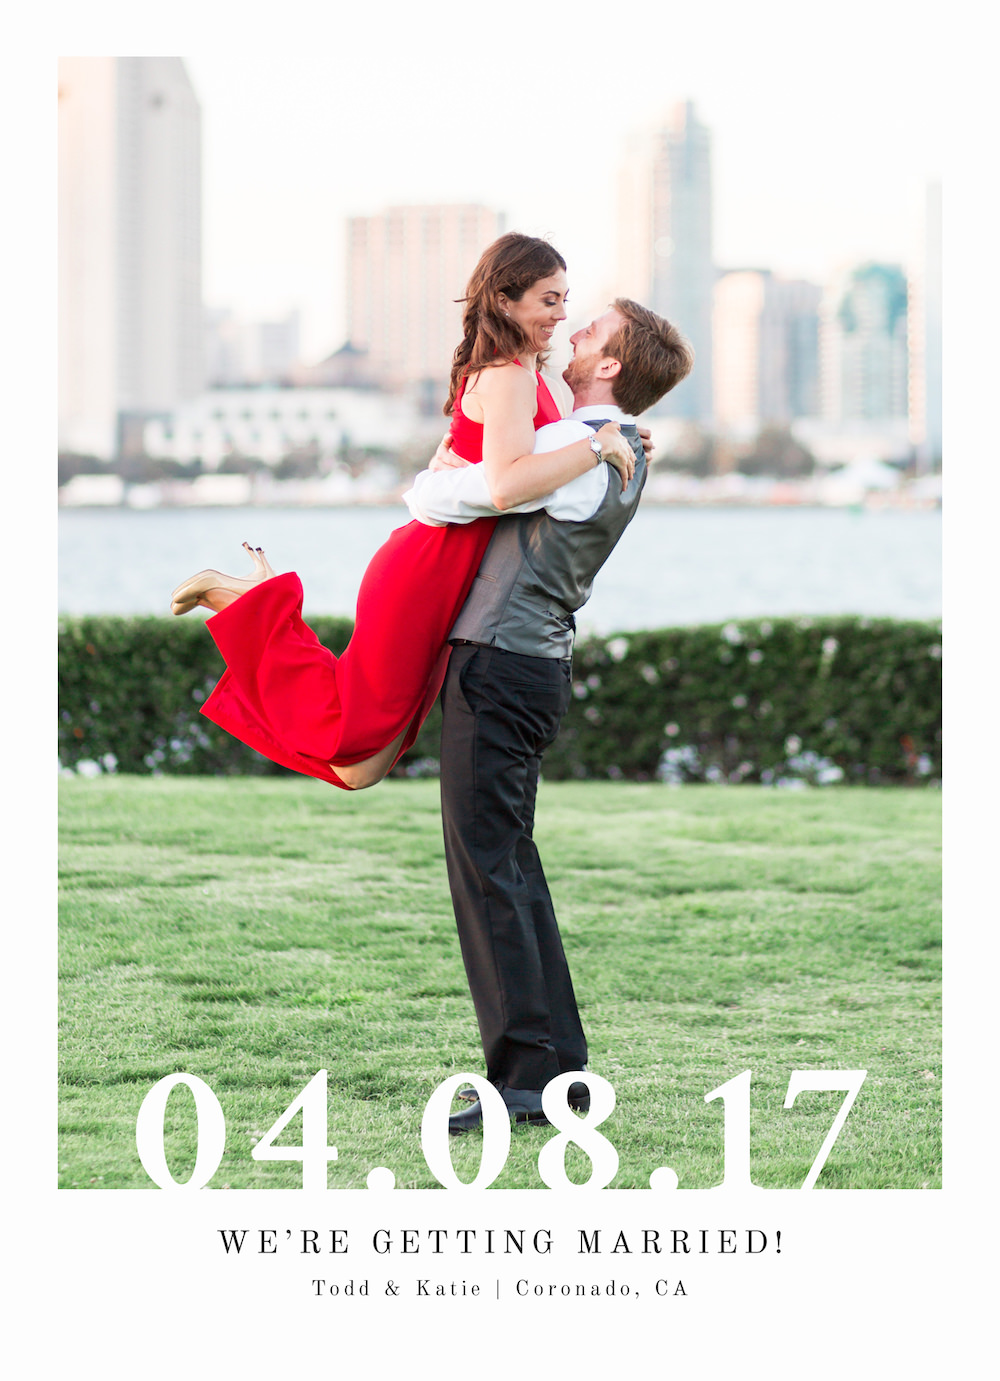 Save the date card with photos